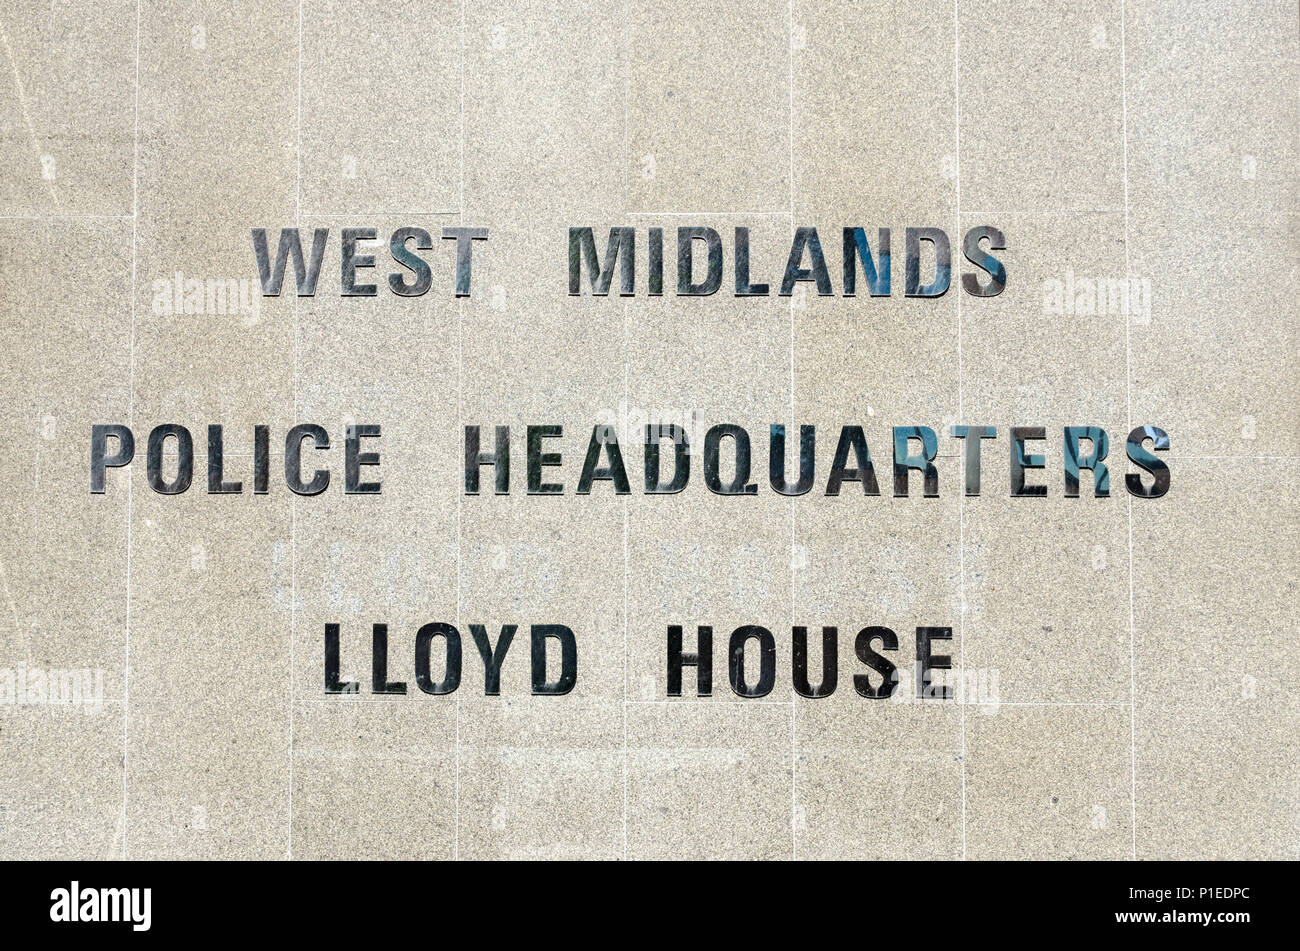 City Police Headquarters Sign Stock Photos & City Police